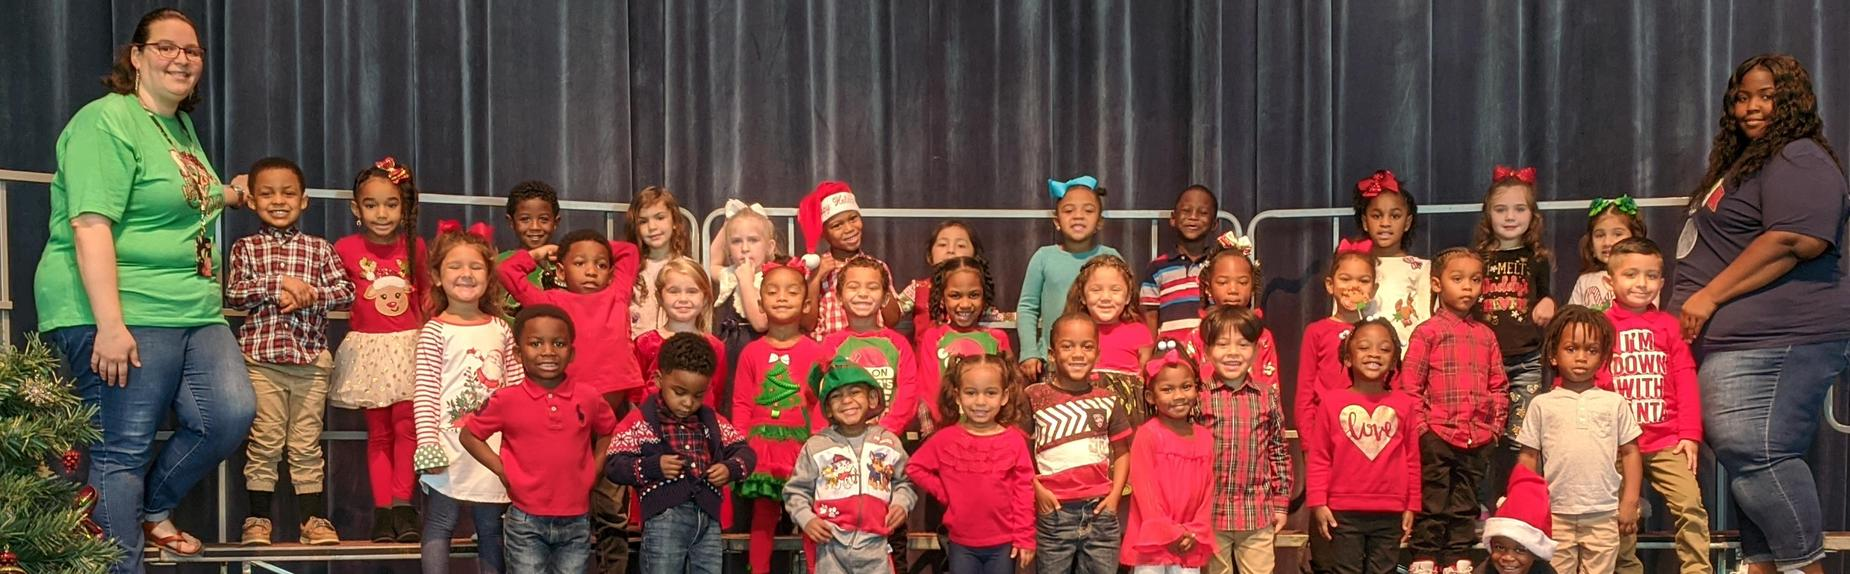 Children acknowledged with Positive Behavior Sing Christmas Songs at the Beaumont Event Center